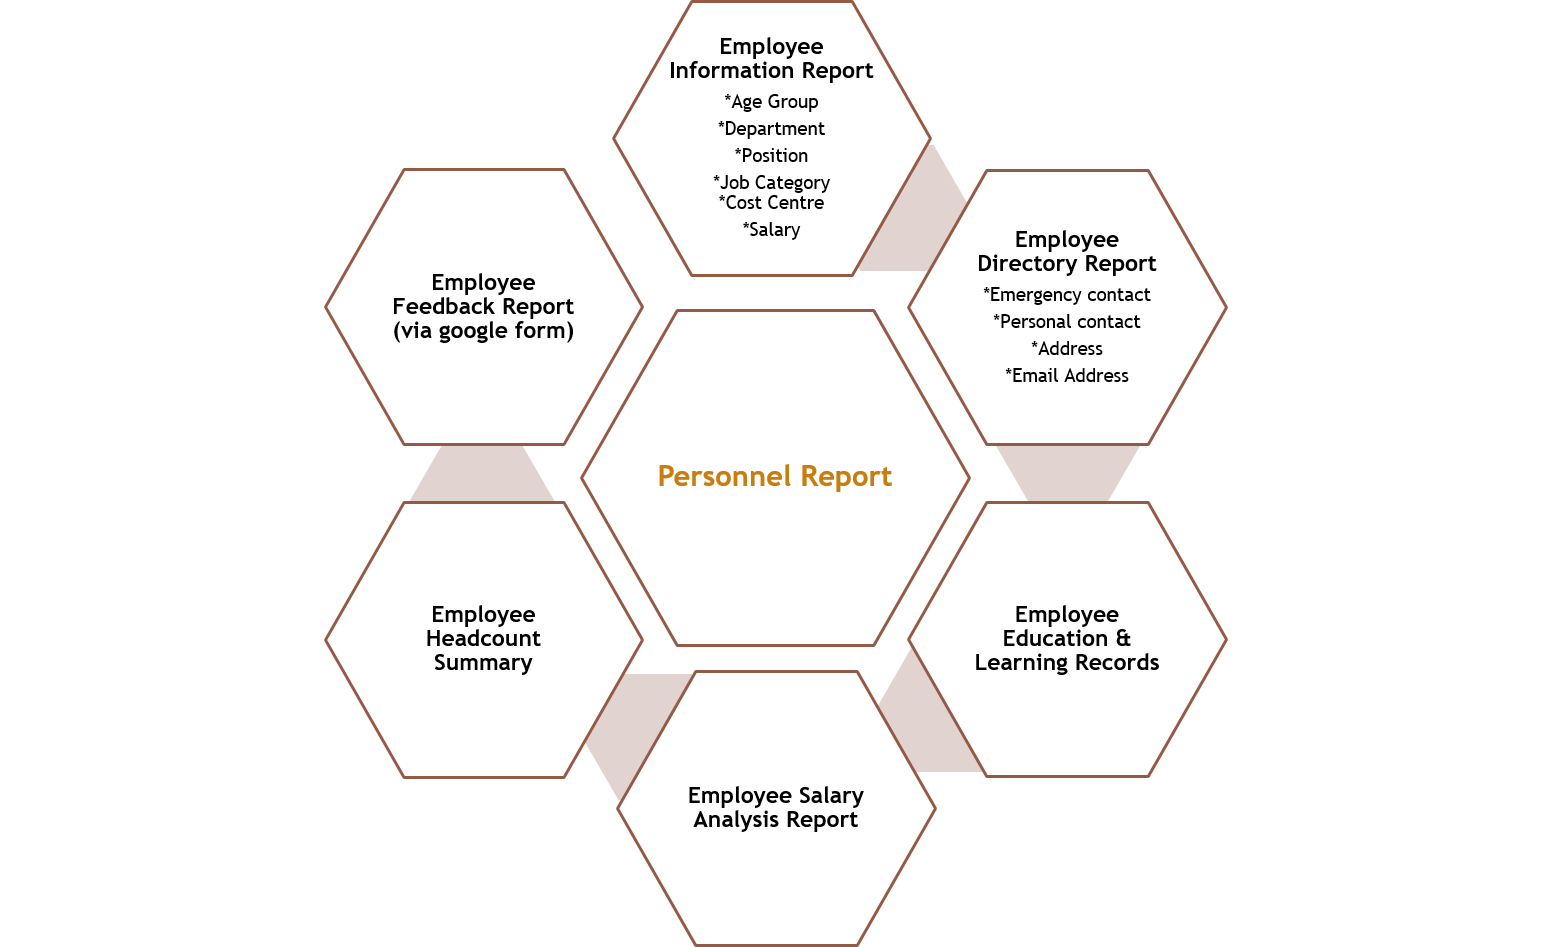 personnel report